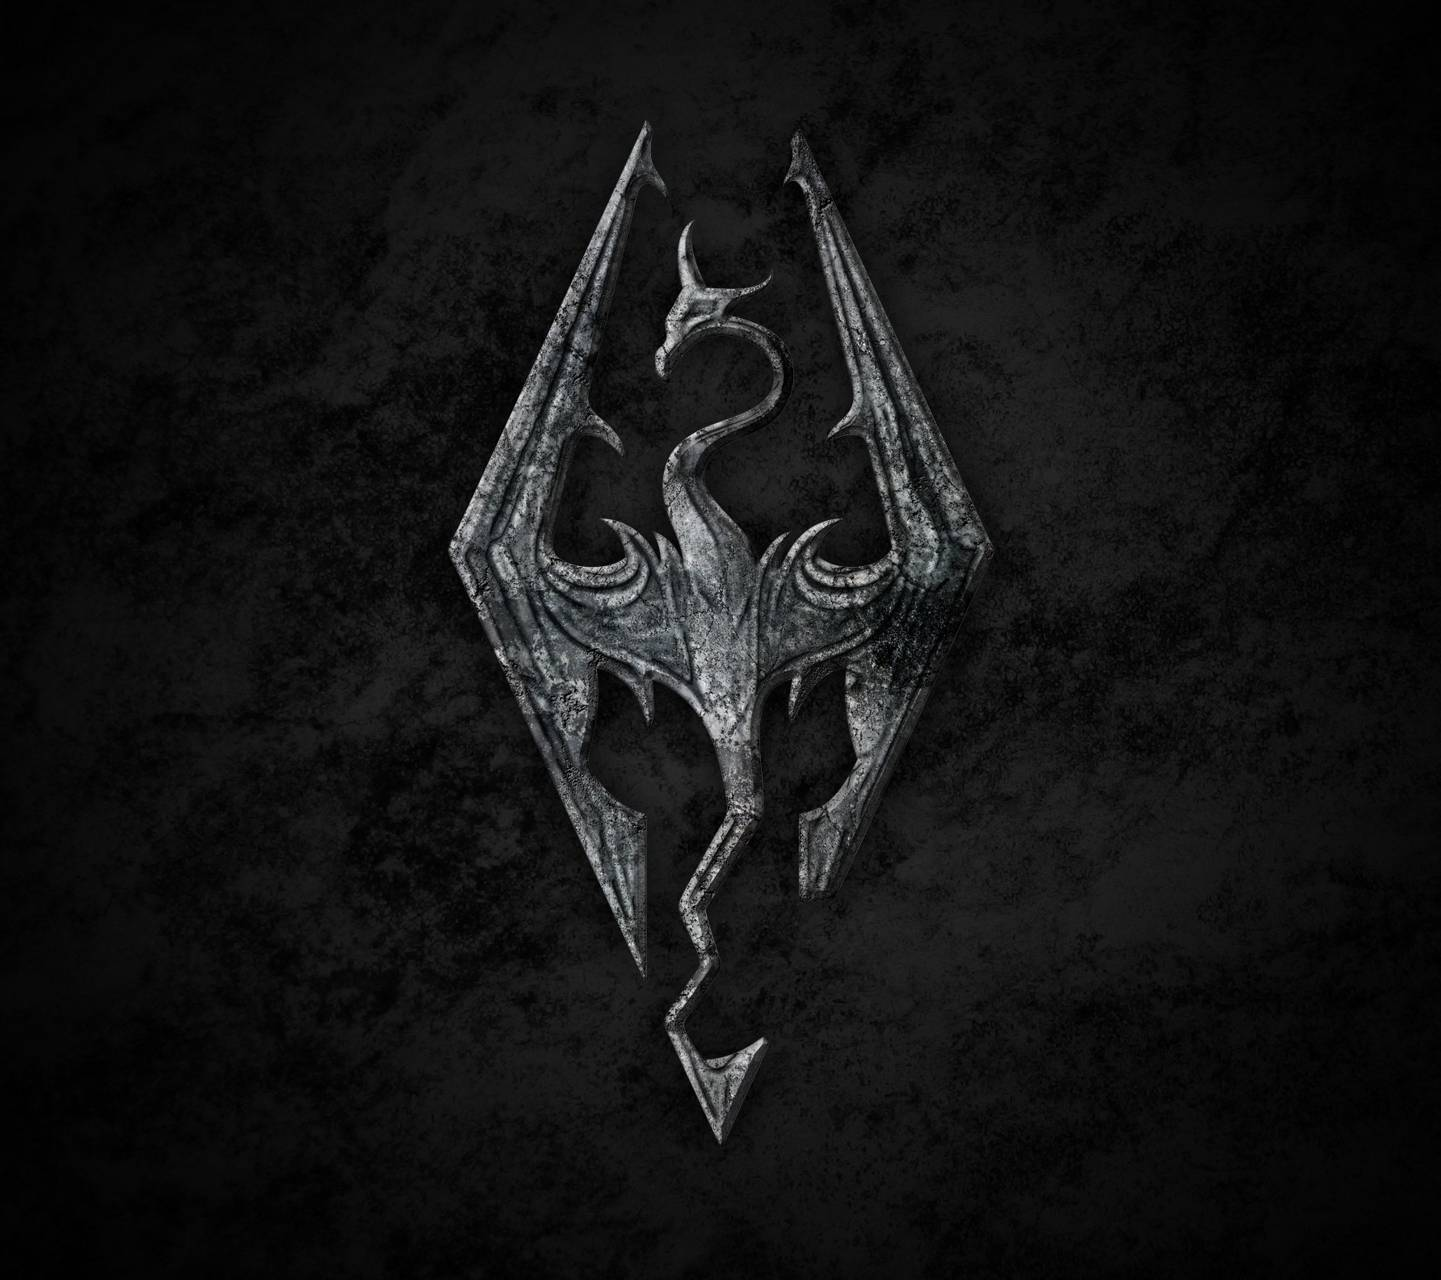 Skyrim Wallpaper: Skyrim Logo Wallpaper 1920x1080 Jpg